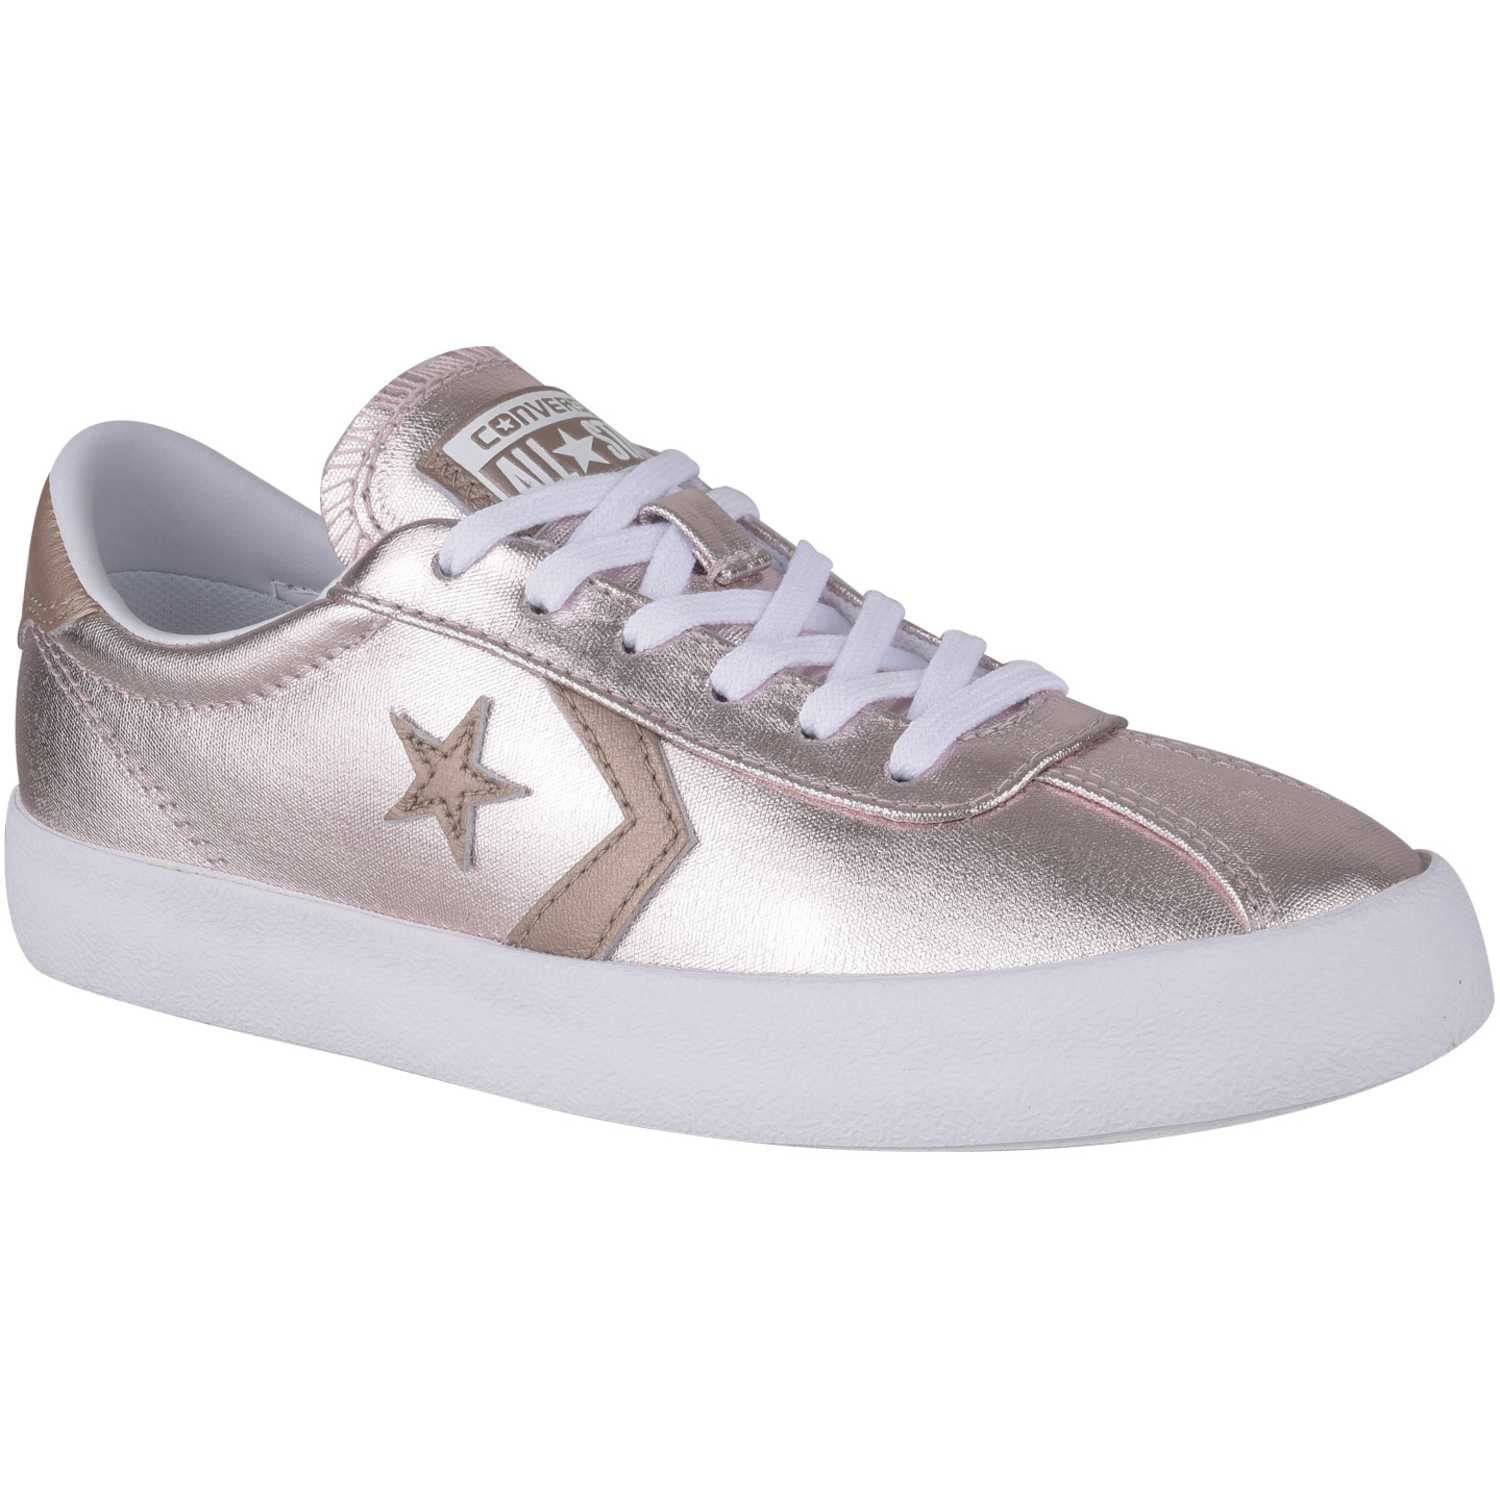 5f10b21fe71 Zapatilla de Jovencita Converse Rose gold break point metallic ...